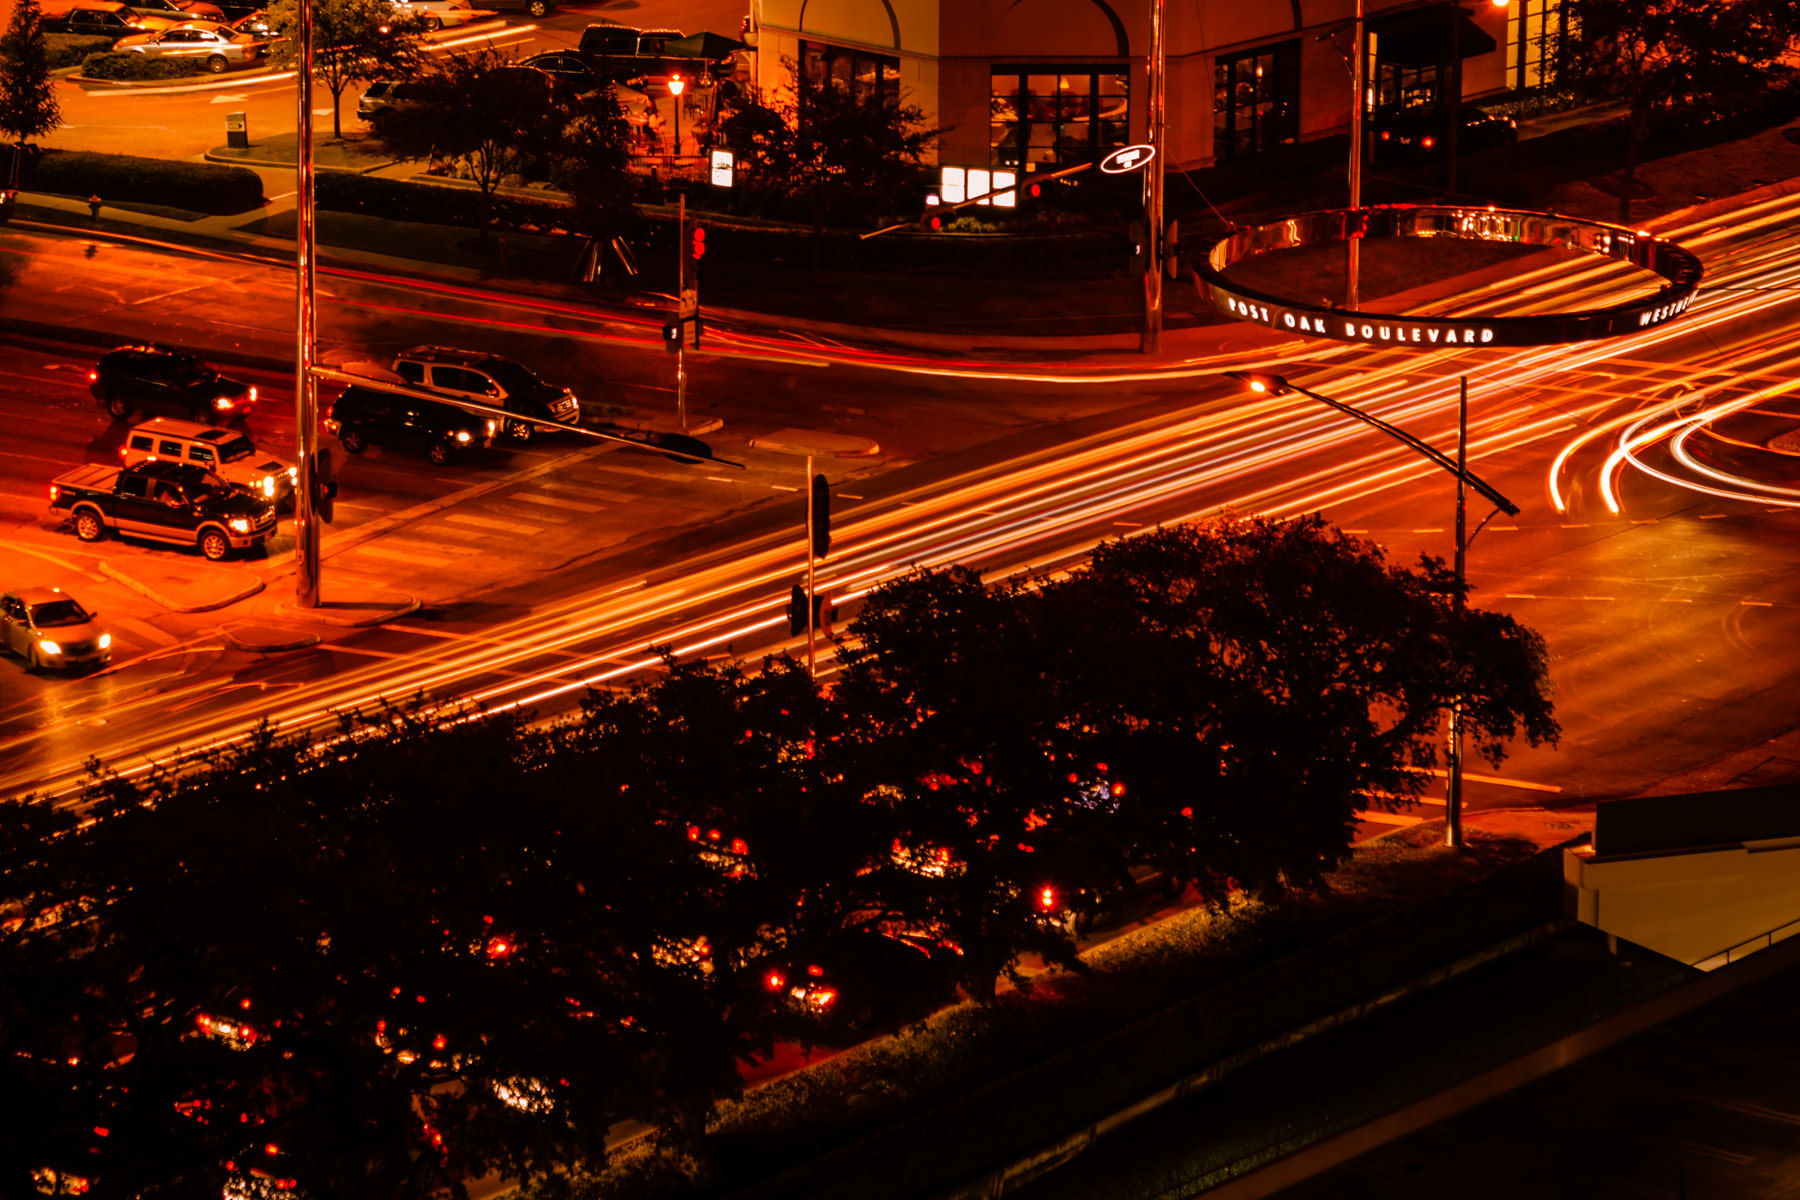 A long exposure shot of the busy Houston intersection of Post Oak and Westheimer.